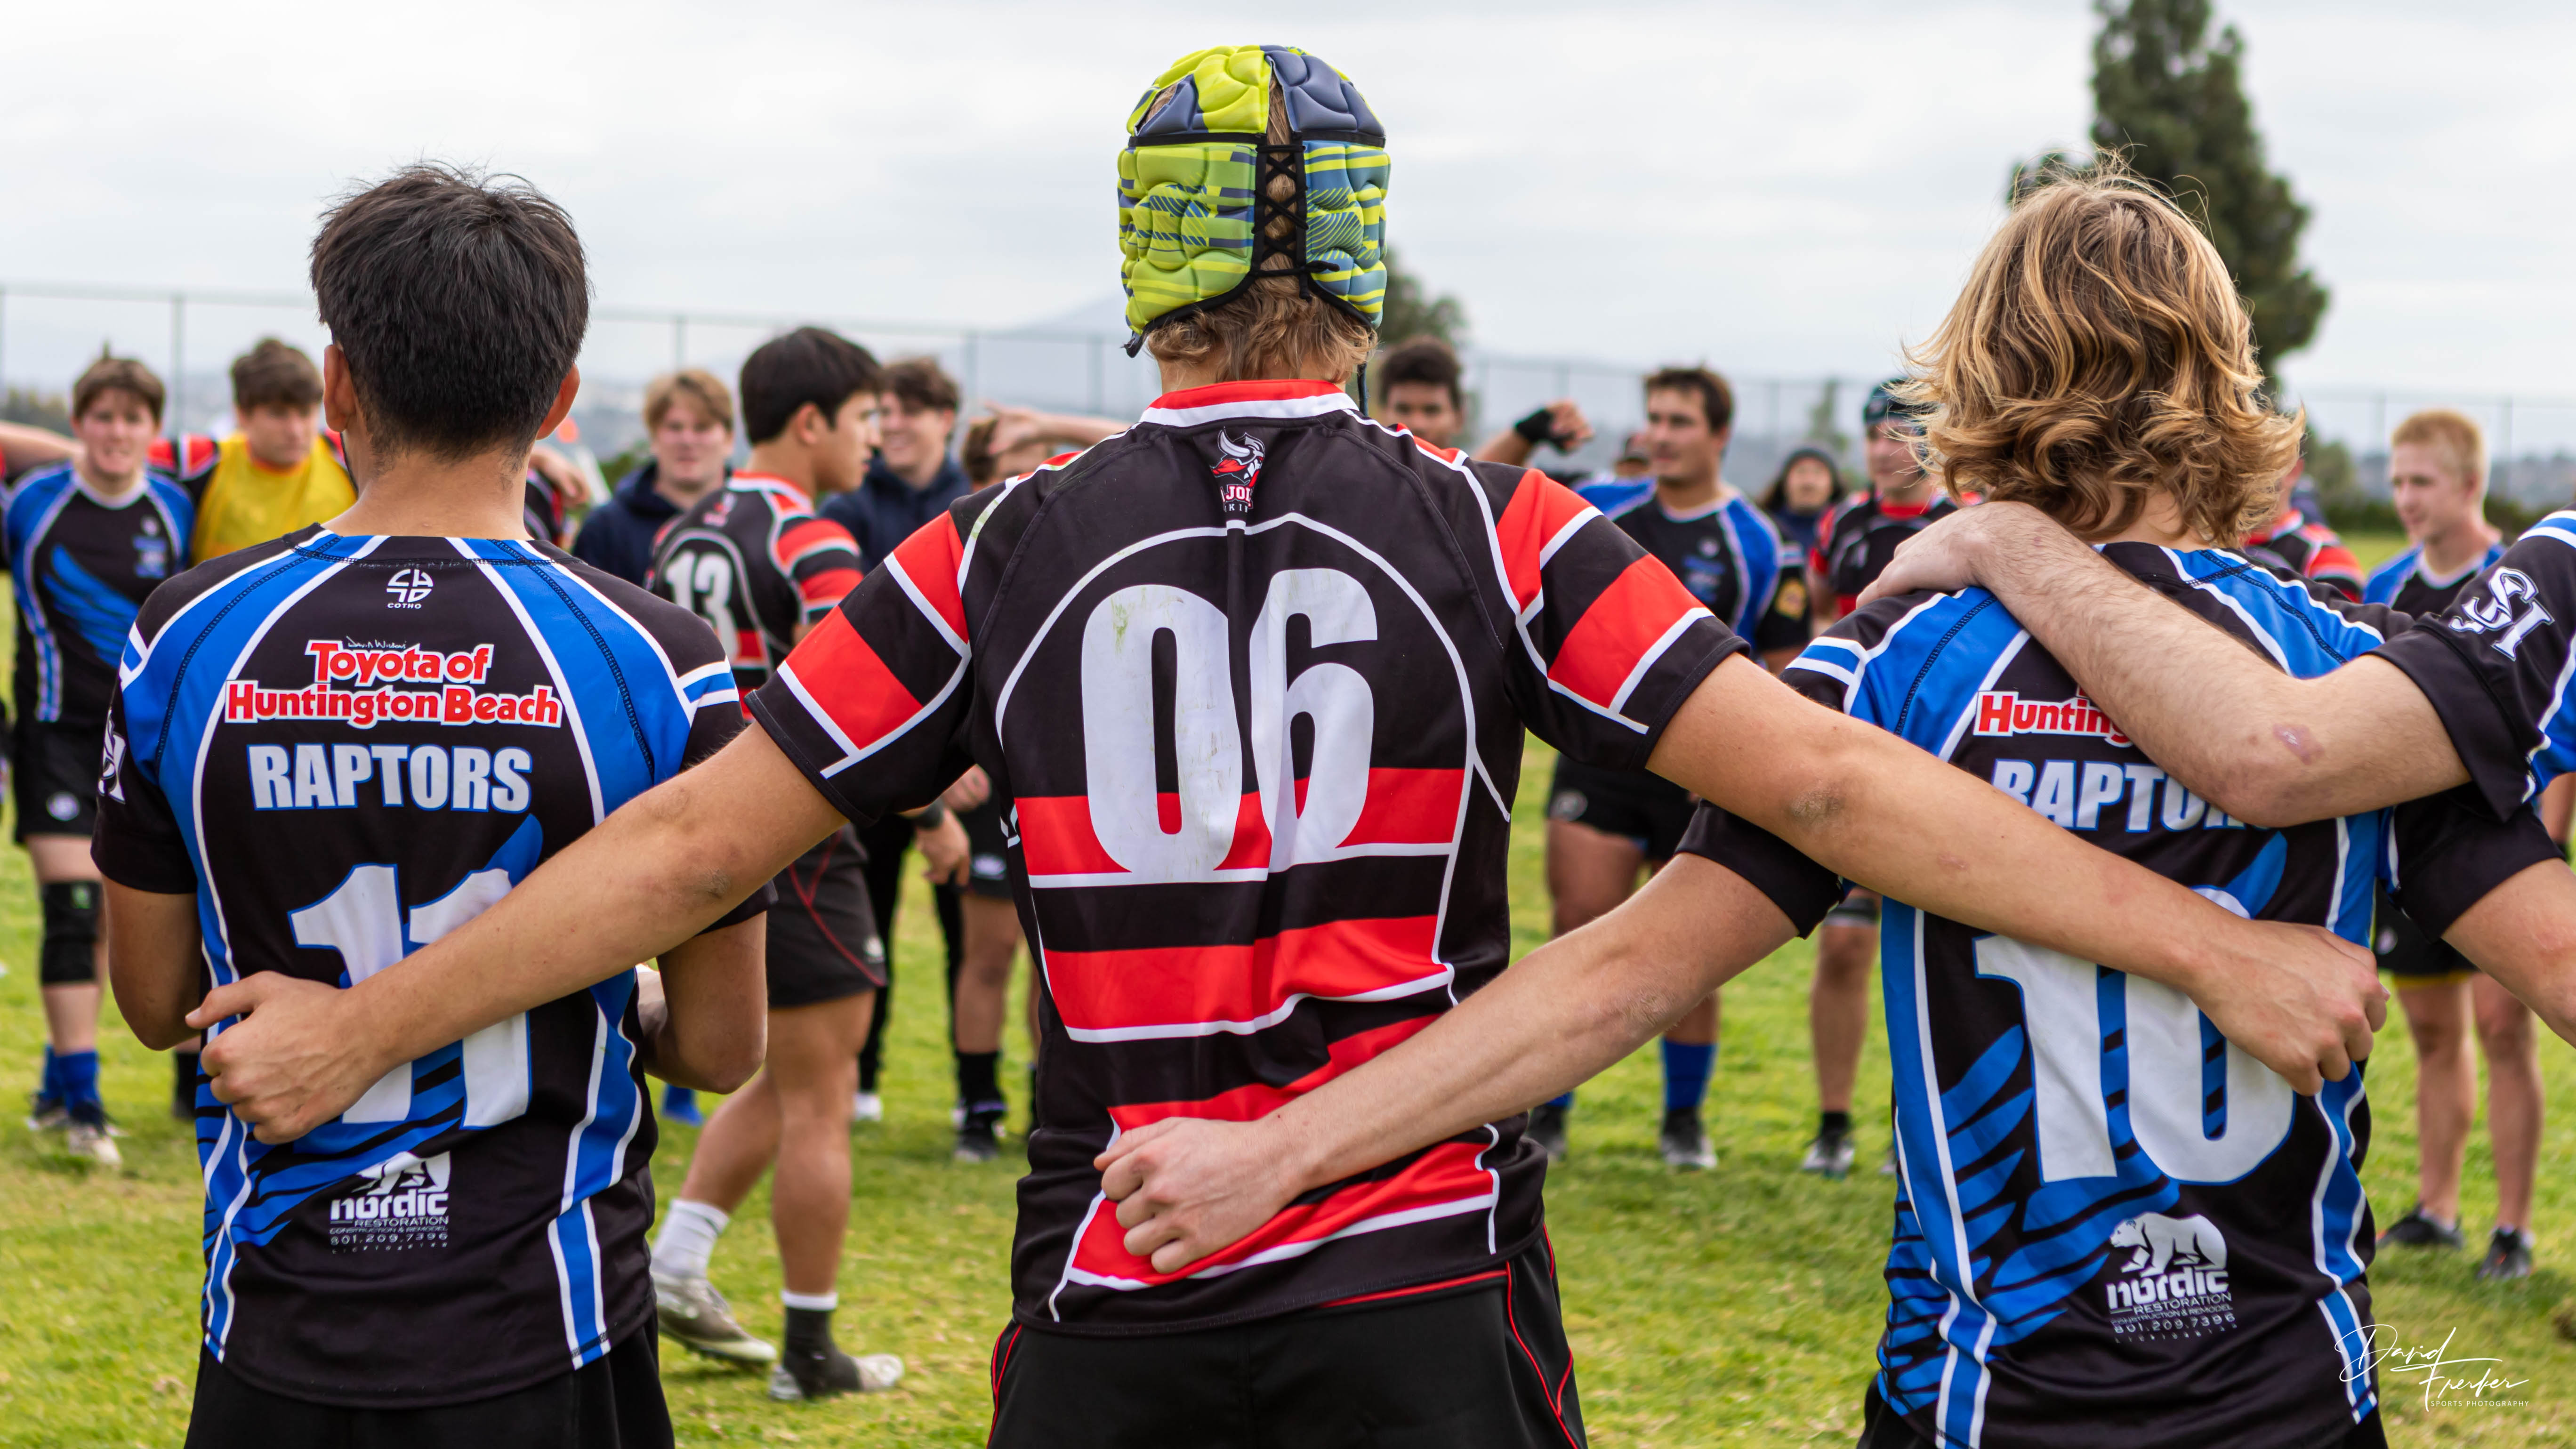 LaJollaRugby95